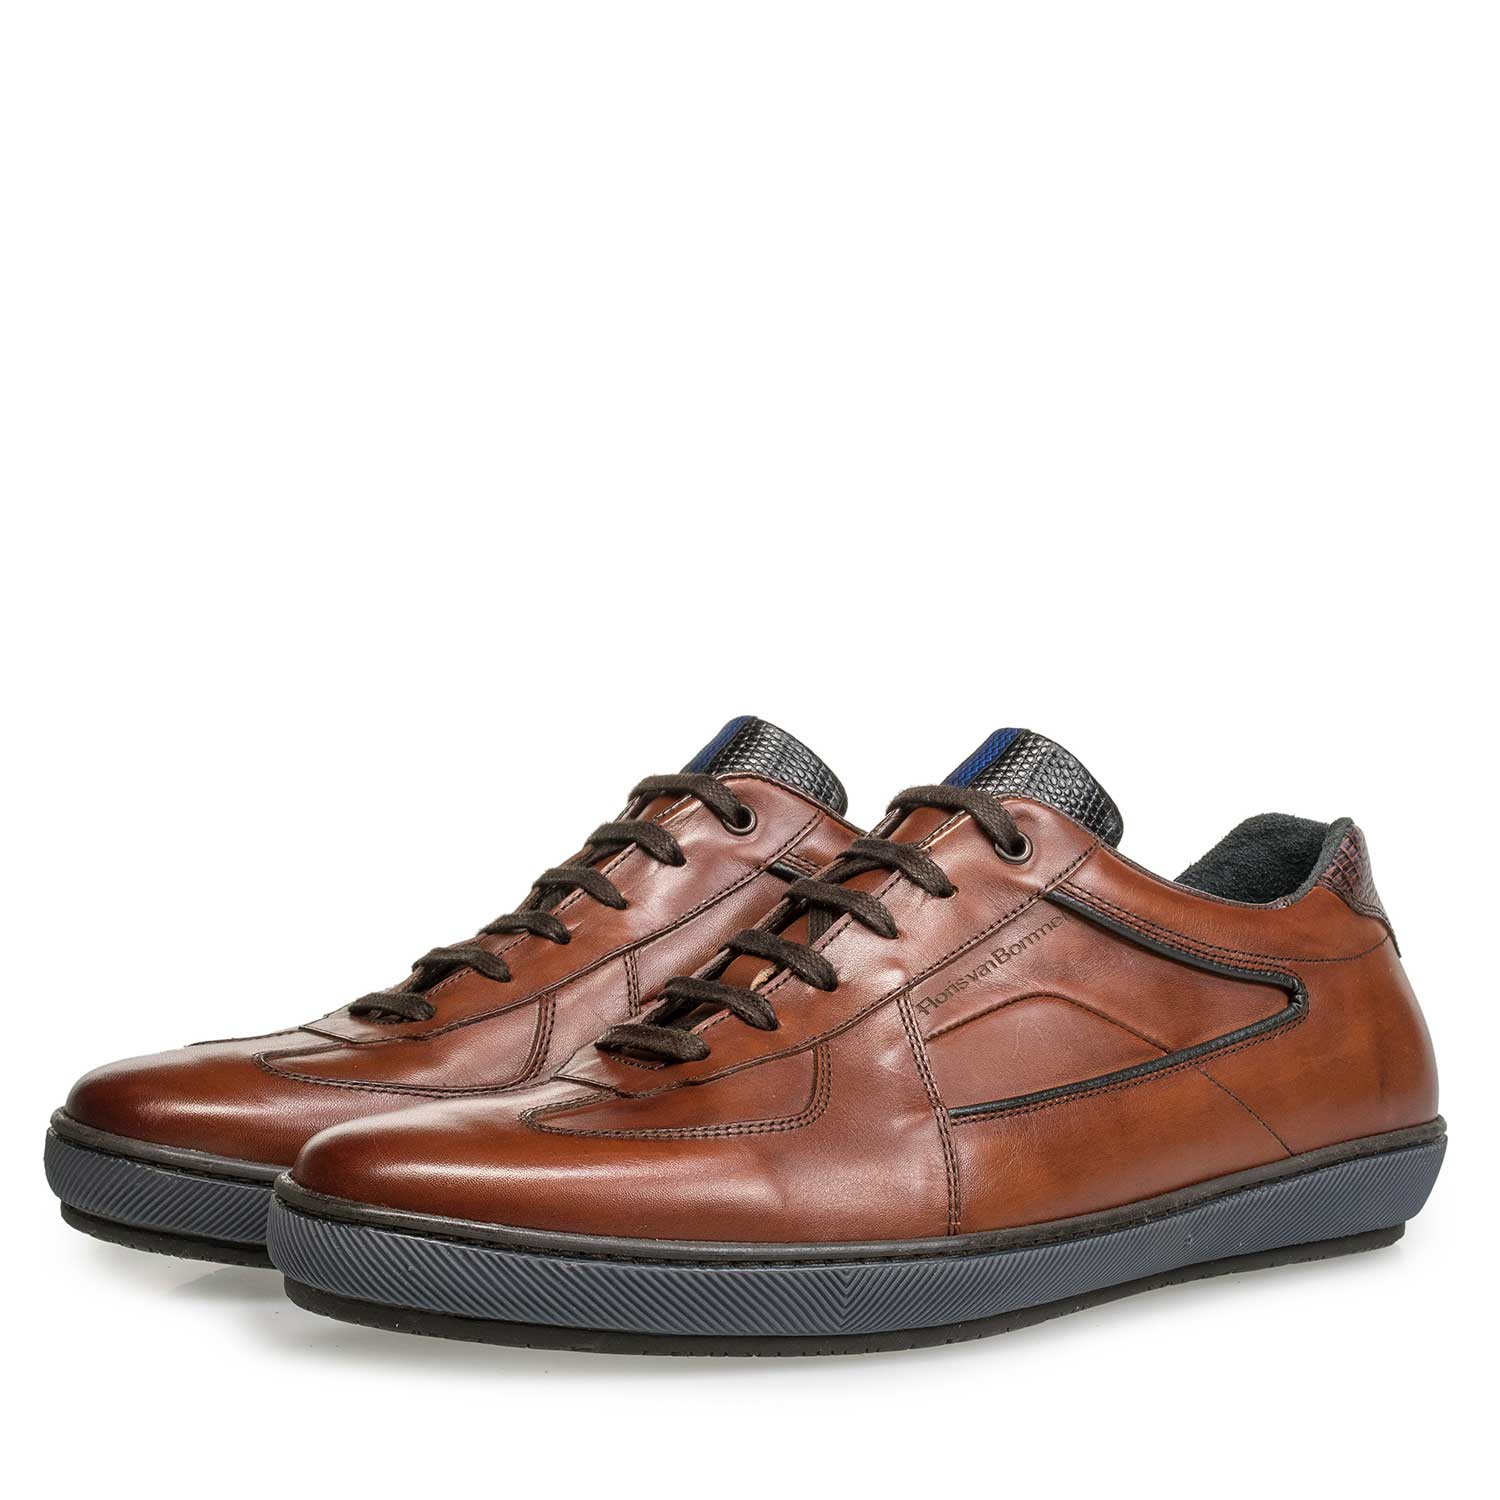 16189/03 - Cognac-coloured lace shoe with sportive trim lines